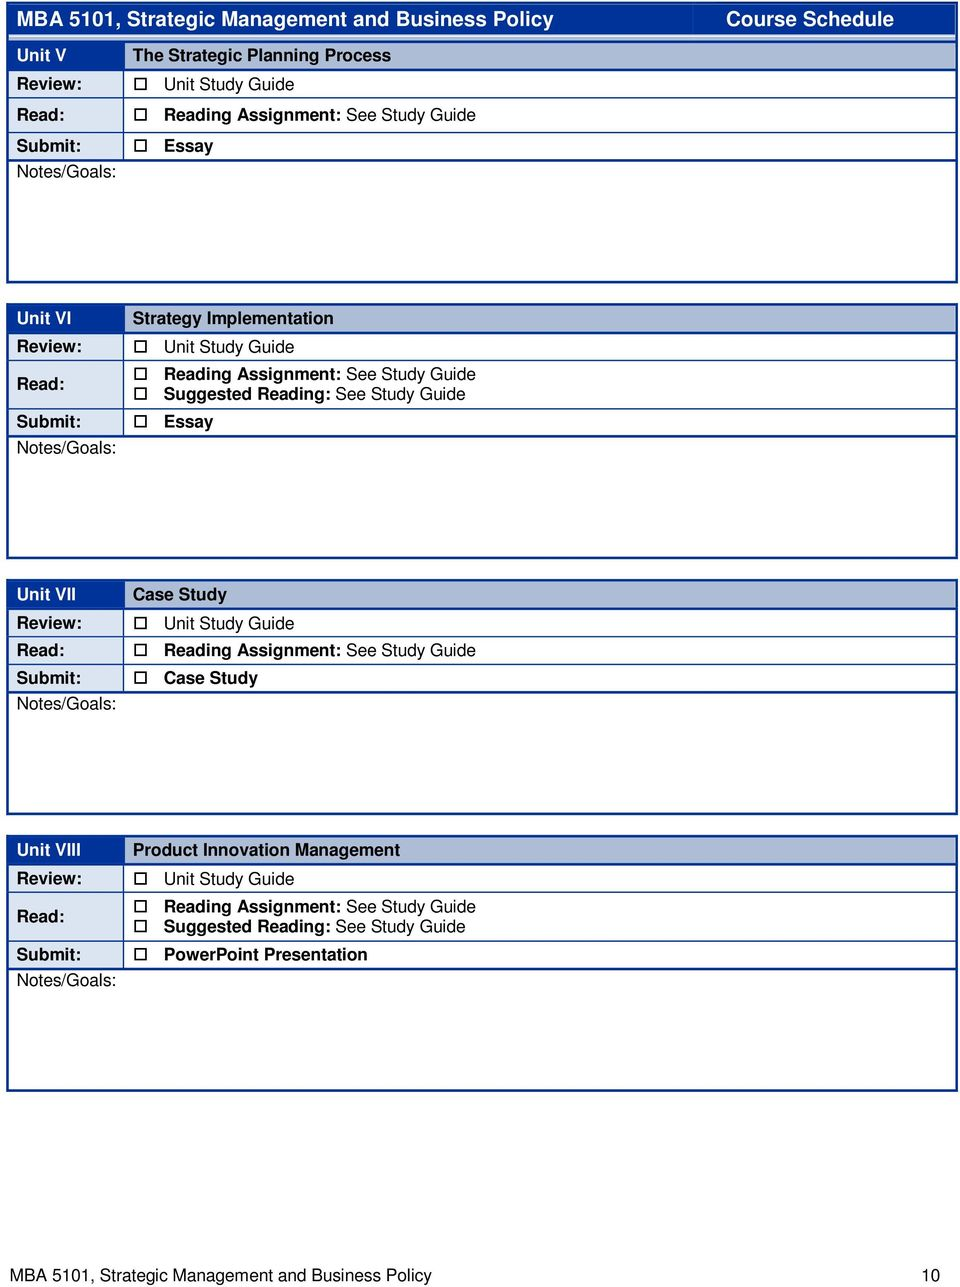 Mba 5101 Strategic Management And Business Policy Course Syllabus